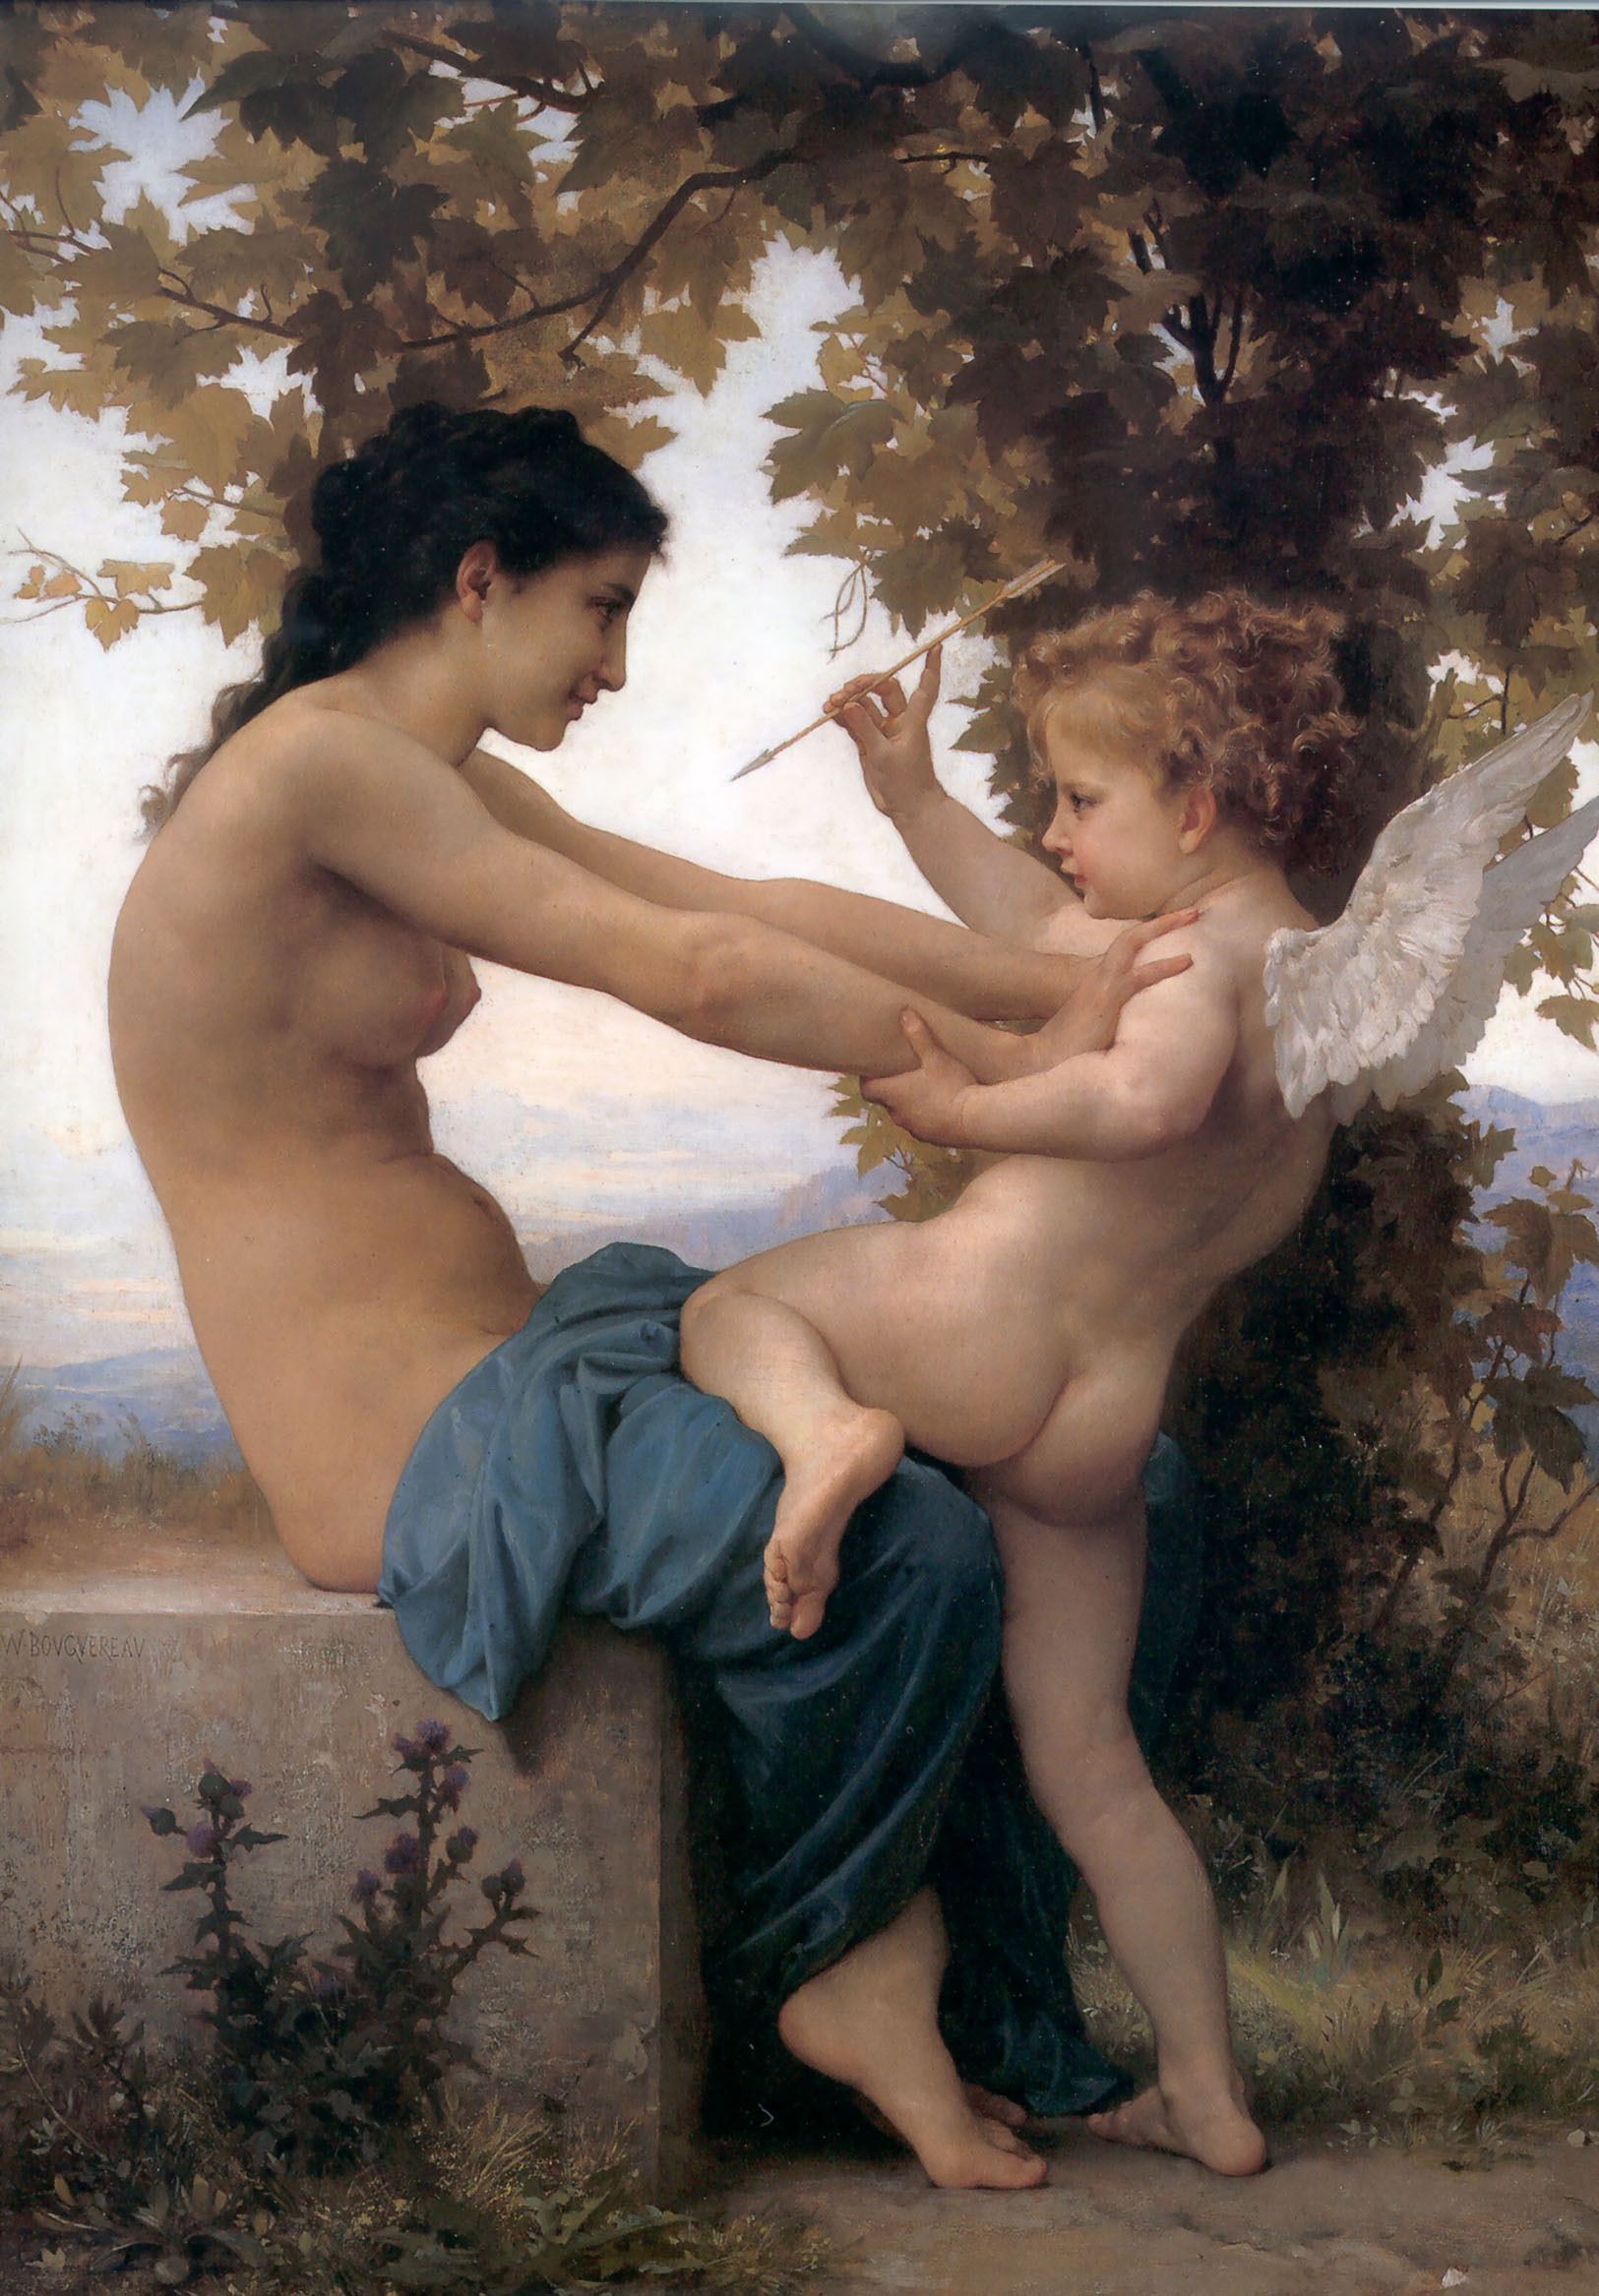 William Bouguereau (1825-1905)  Jeune Fille se Defendant Contre L'amour [Young Girl Defending herself against Cupid]  Oil on canvas, 1880  North Carolina Museum of Art, RaleighOriginal of: Love's Resistance [1885] by William Bouguereau.